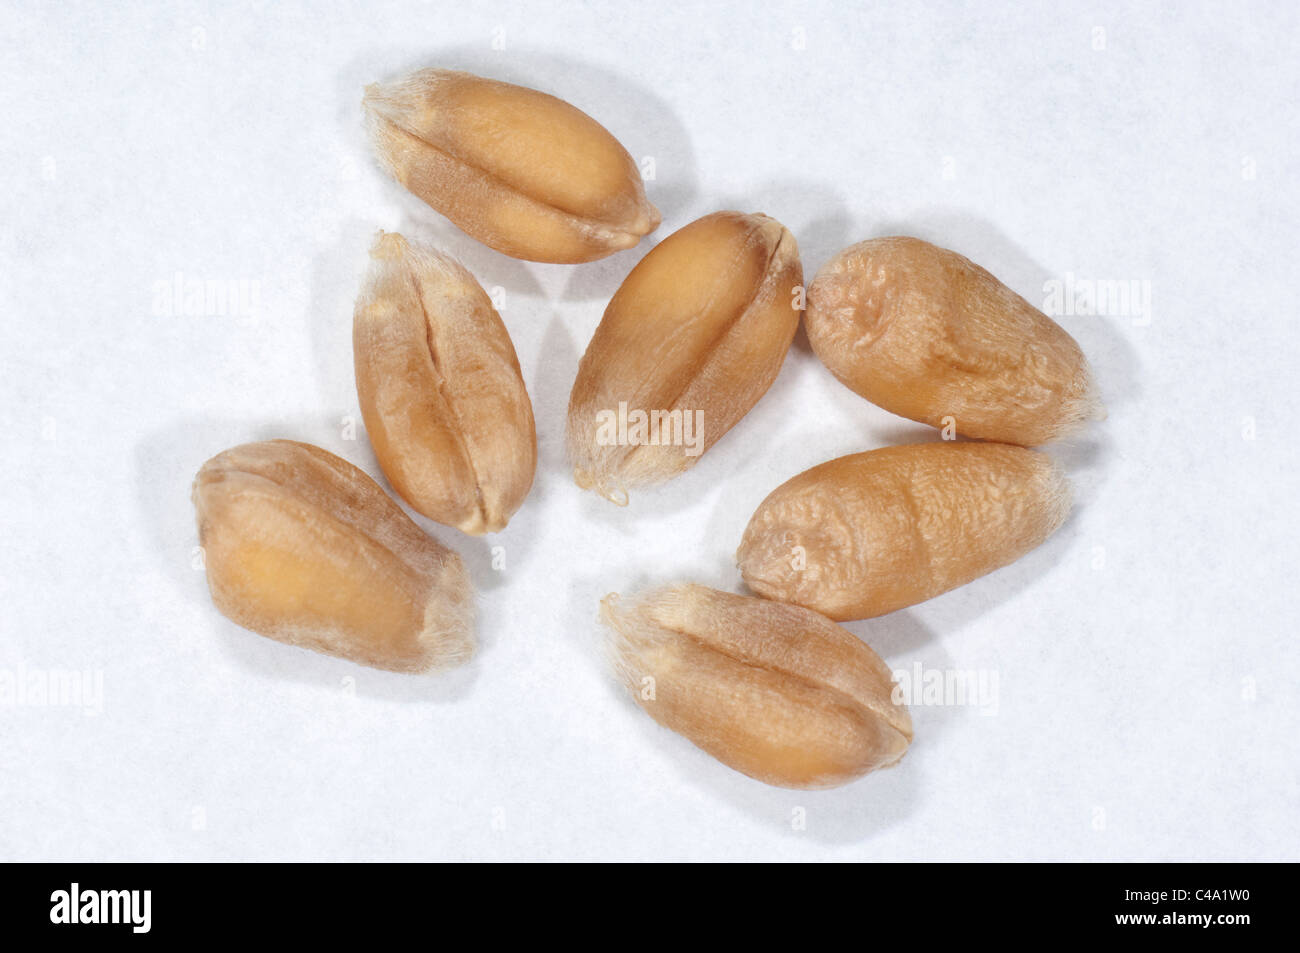 Common Wheat, Bread Wheat (Triticum aestivum), seeds. Studio picture against a white background. - Stock Image